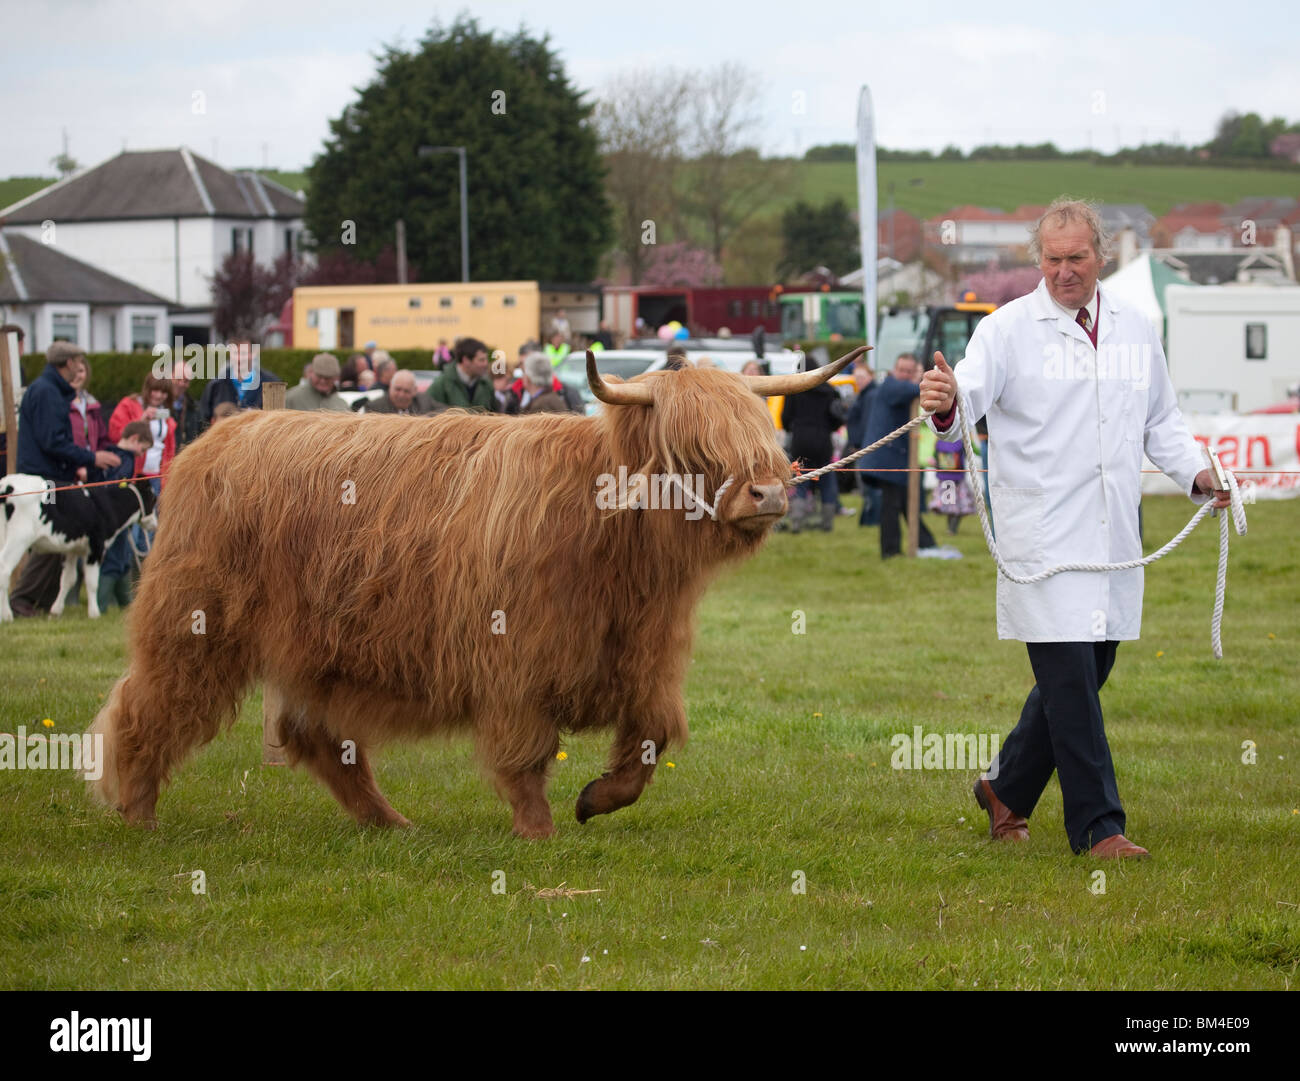 Farmer with his Highland cow (or bull, haha, it's all covered with long hair!) at a cattle show. - Stock Image